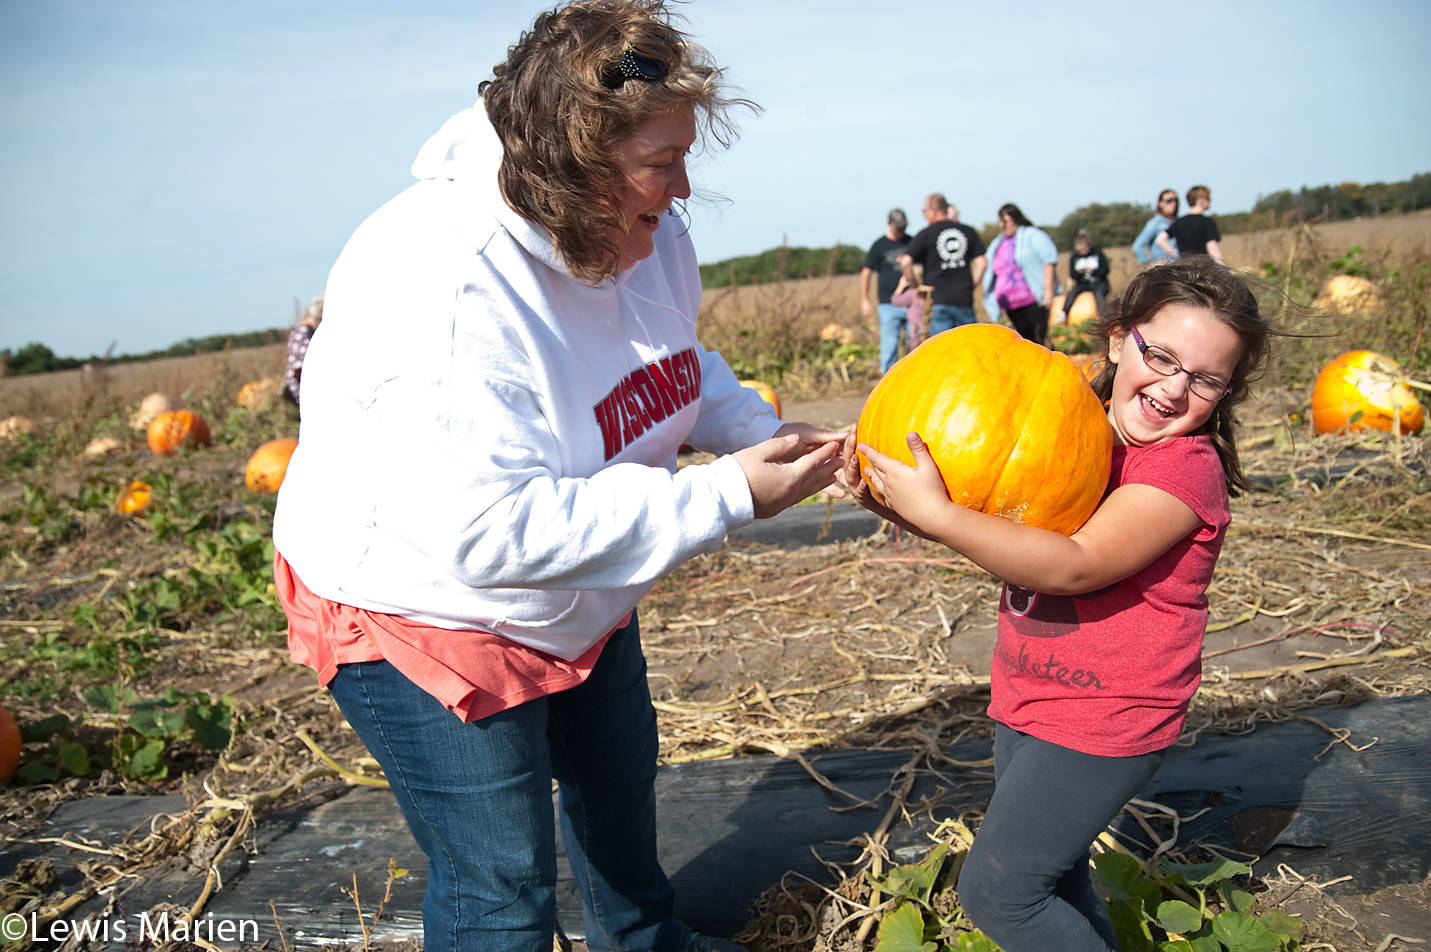 Julie McCurdy, left, of Moline, Ill., has a laugh while her daughter Macy, 5, struggles to carry a giant pumpkin on Oct. 10 during the Giant Pumpkin Festival at Country Corner Farm in Alpha, Ill.